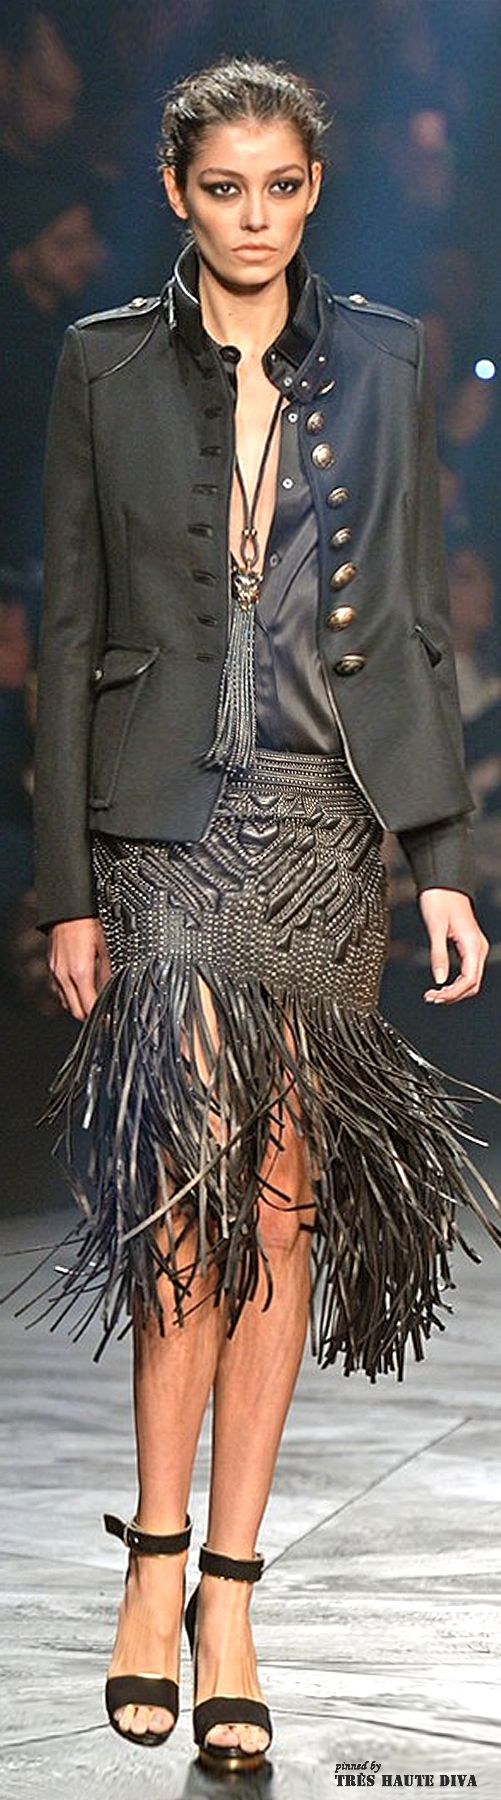 #Milan Fashion Week Roberto Cavalli Fall/Winter 2014 RTW| LBV ♥✤ | KeepSmiling | BeStayBeautiful